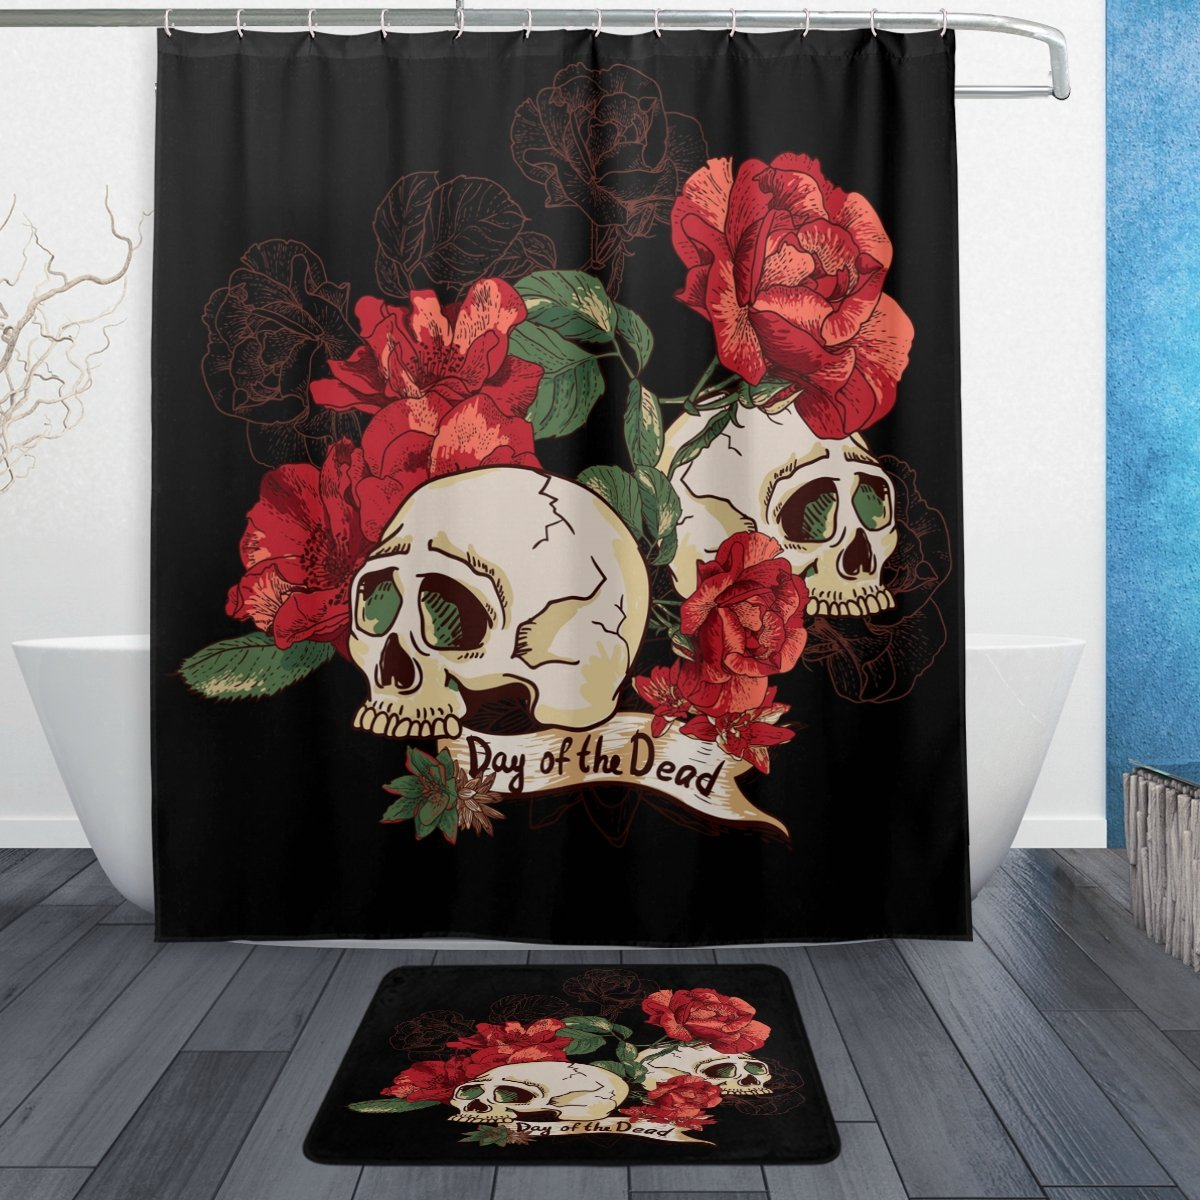 Day of the Dead Flower Sugar Skull Waterproof Polyester Fabric Shower Curtain with Hooks Doormat Bath Bathroom Home Black Red